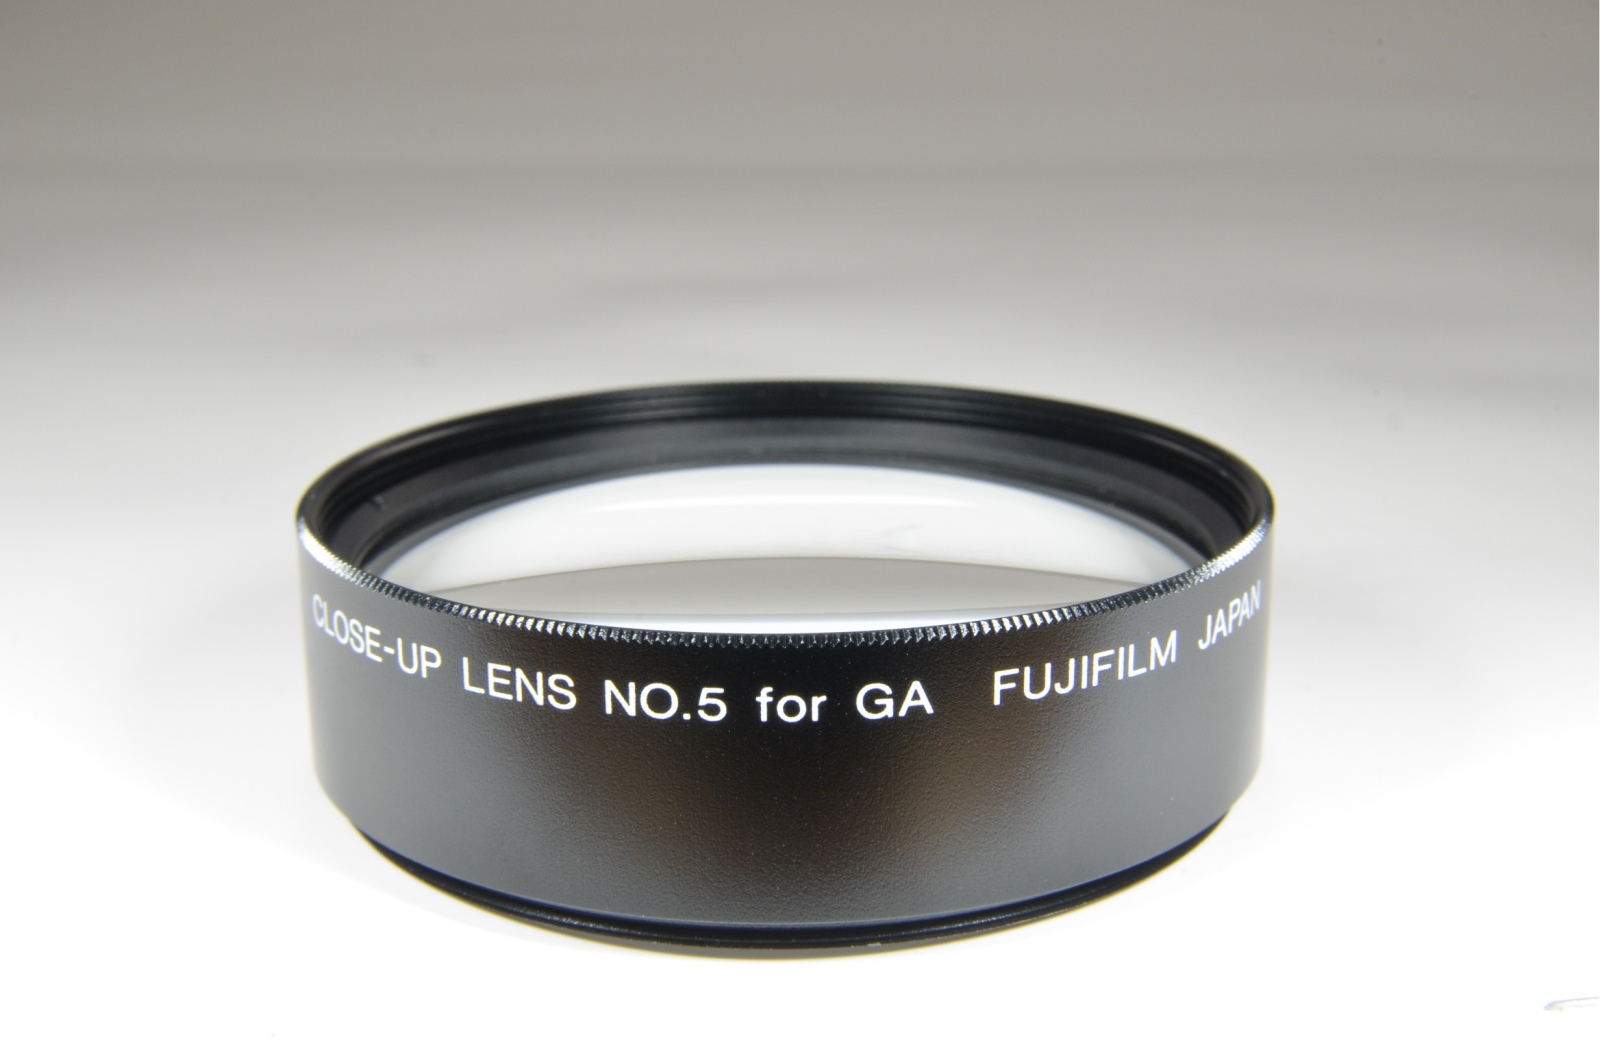 fuji fujifilm ga close-up lens kit no.5 for ga645 medium format camera